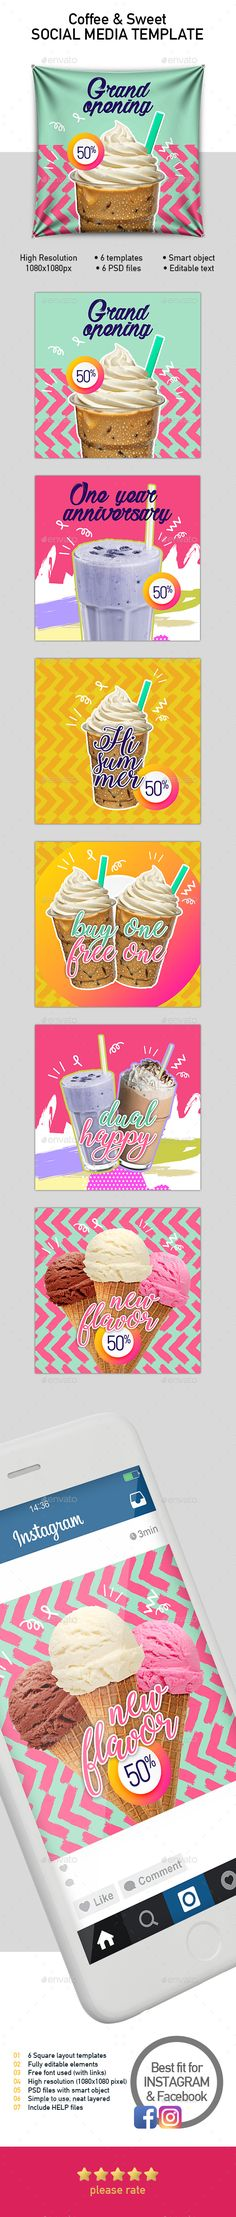 ads, banner, cocktail, coffee, colorful, drink, F&B, facebook, food, instagram, instargam, juice, memphis, minimalist, modern, photo collage, photography, photos, Pinterest, promotion, smoothie, social media, square banner, template, templates, trendy, young